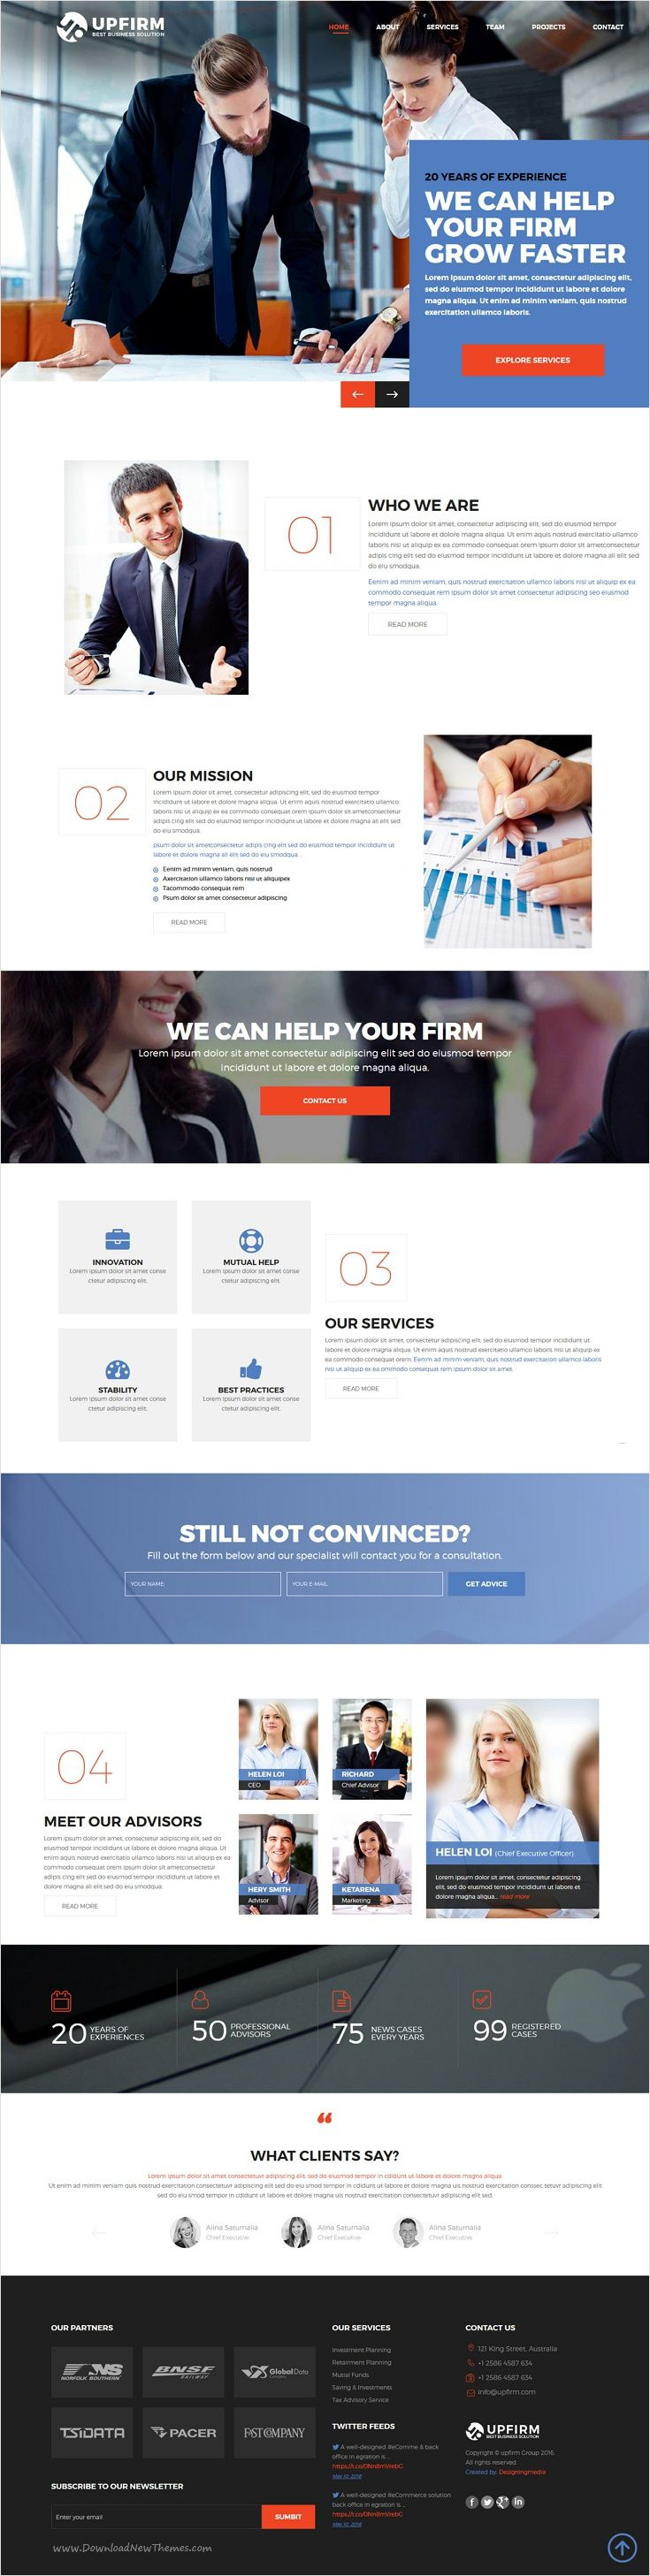 72 best business website templates images on pinterest upfirm multi purpose html5 website template accmission Choice Image